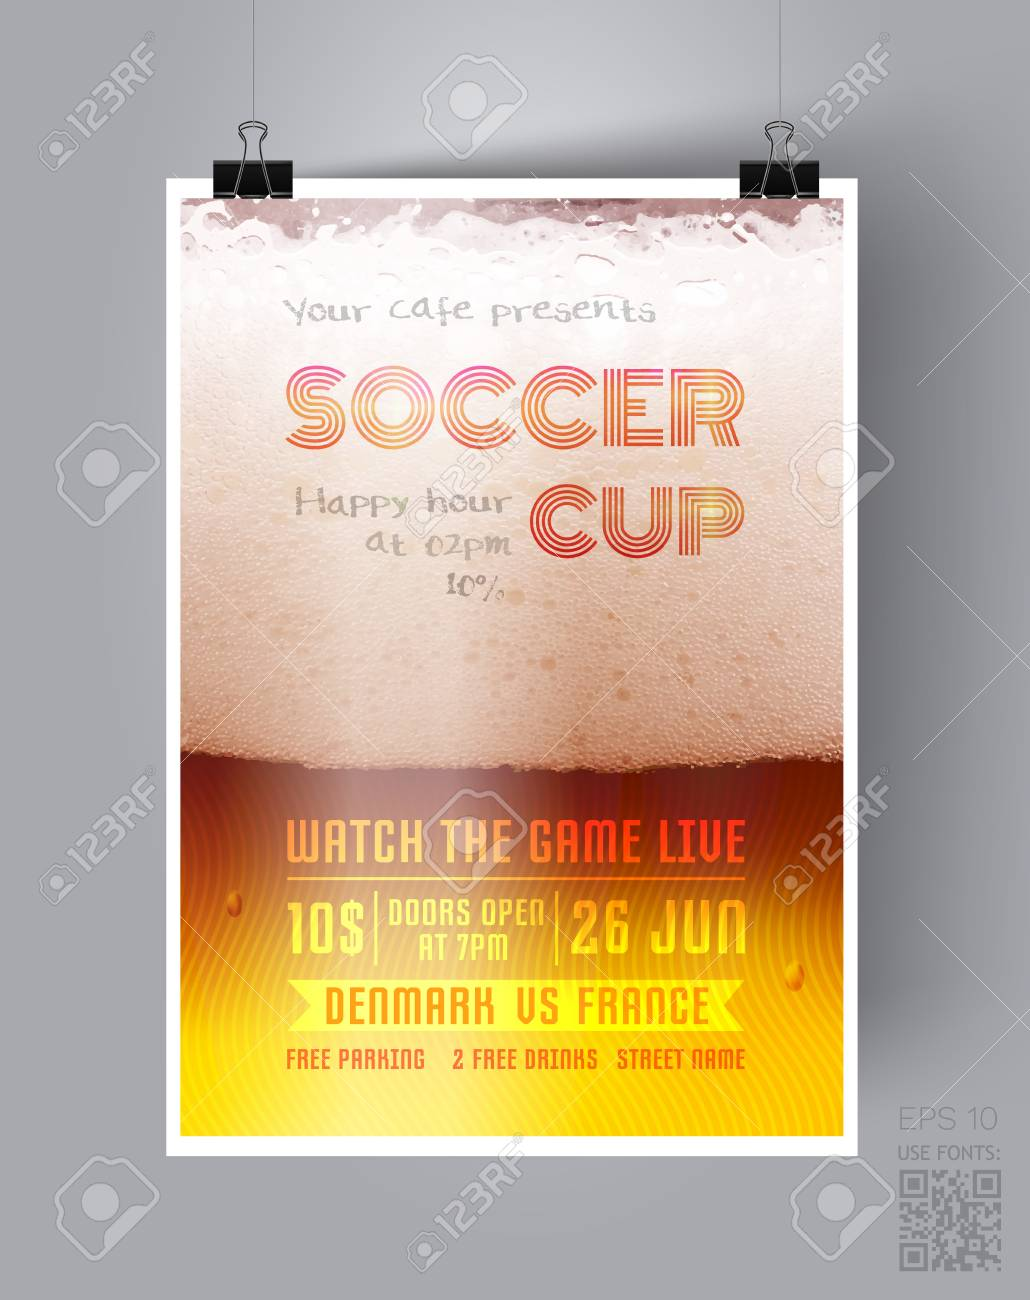 Soccer Cup Flyer Template On The Background Of A Beer Glass Happy Hour Poster